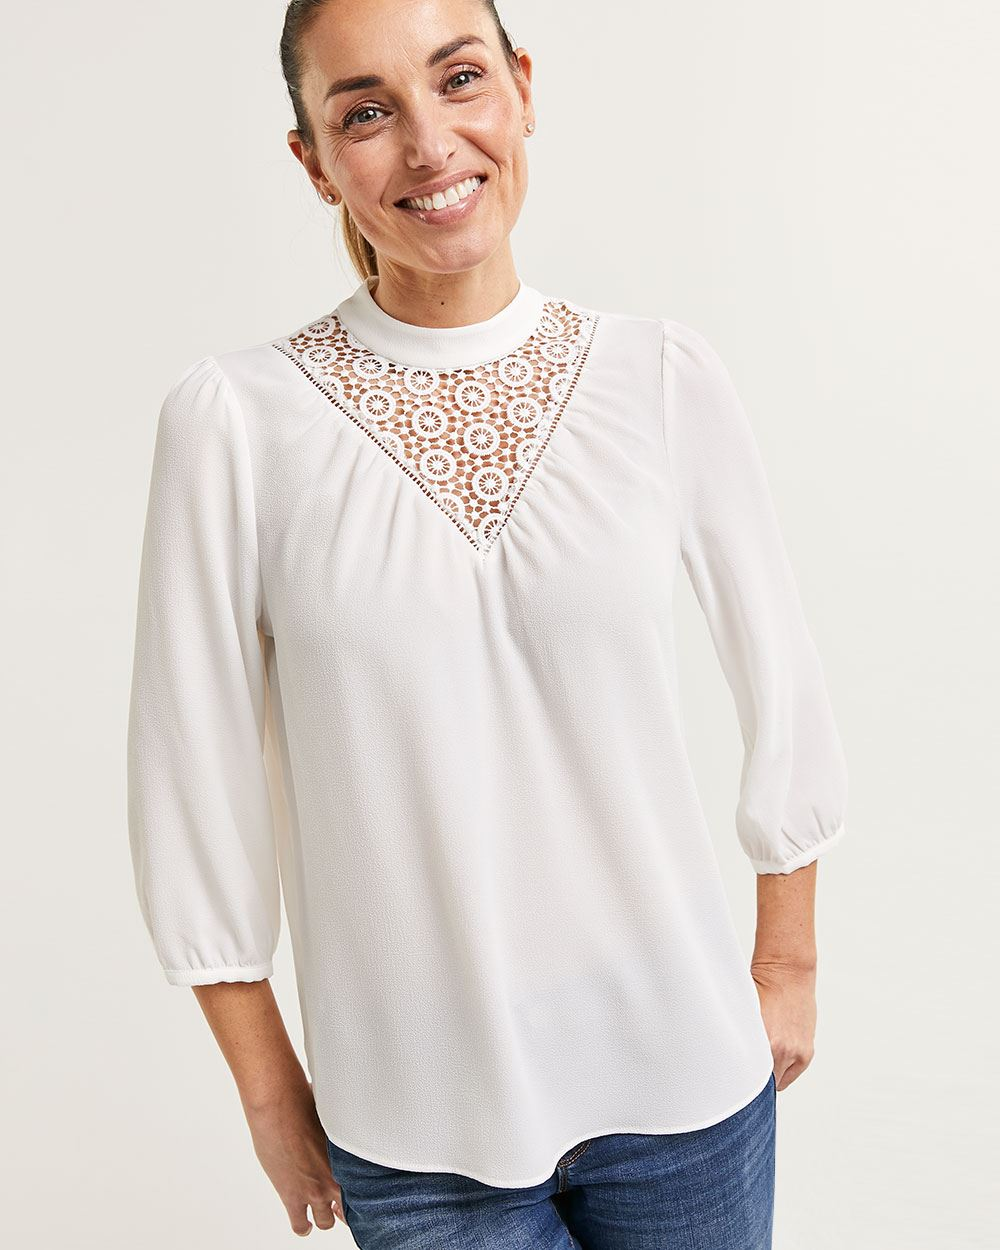 3/4 Sleeve Mock Neck Blouse with Lace Insert